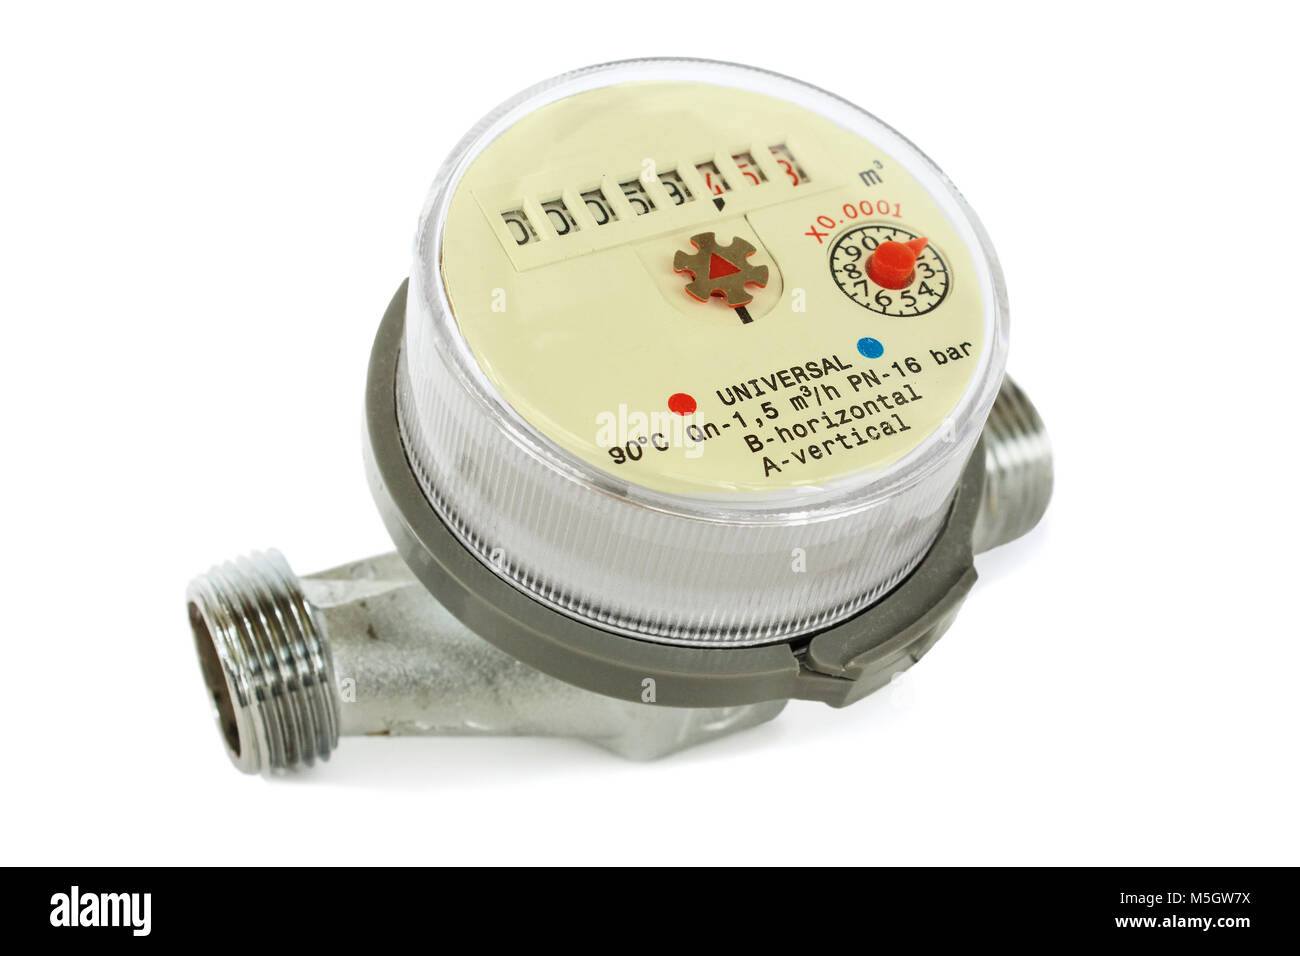 Water meter for domestic water on white background - Stock Image